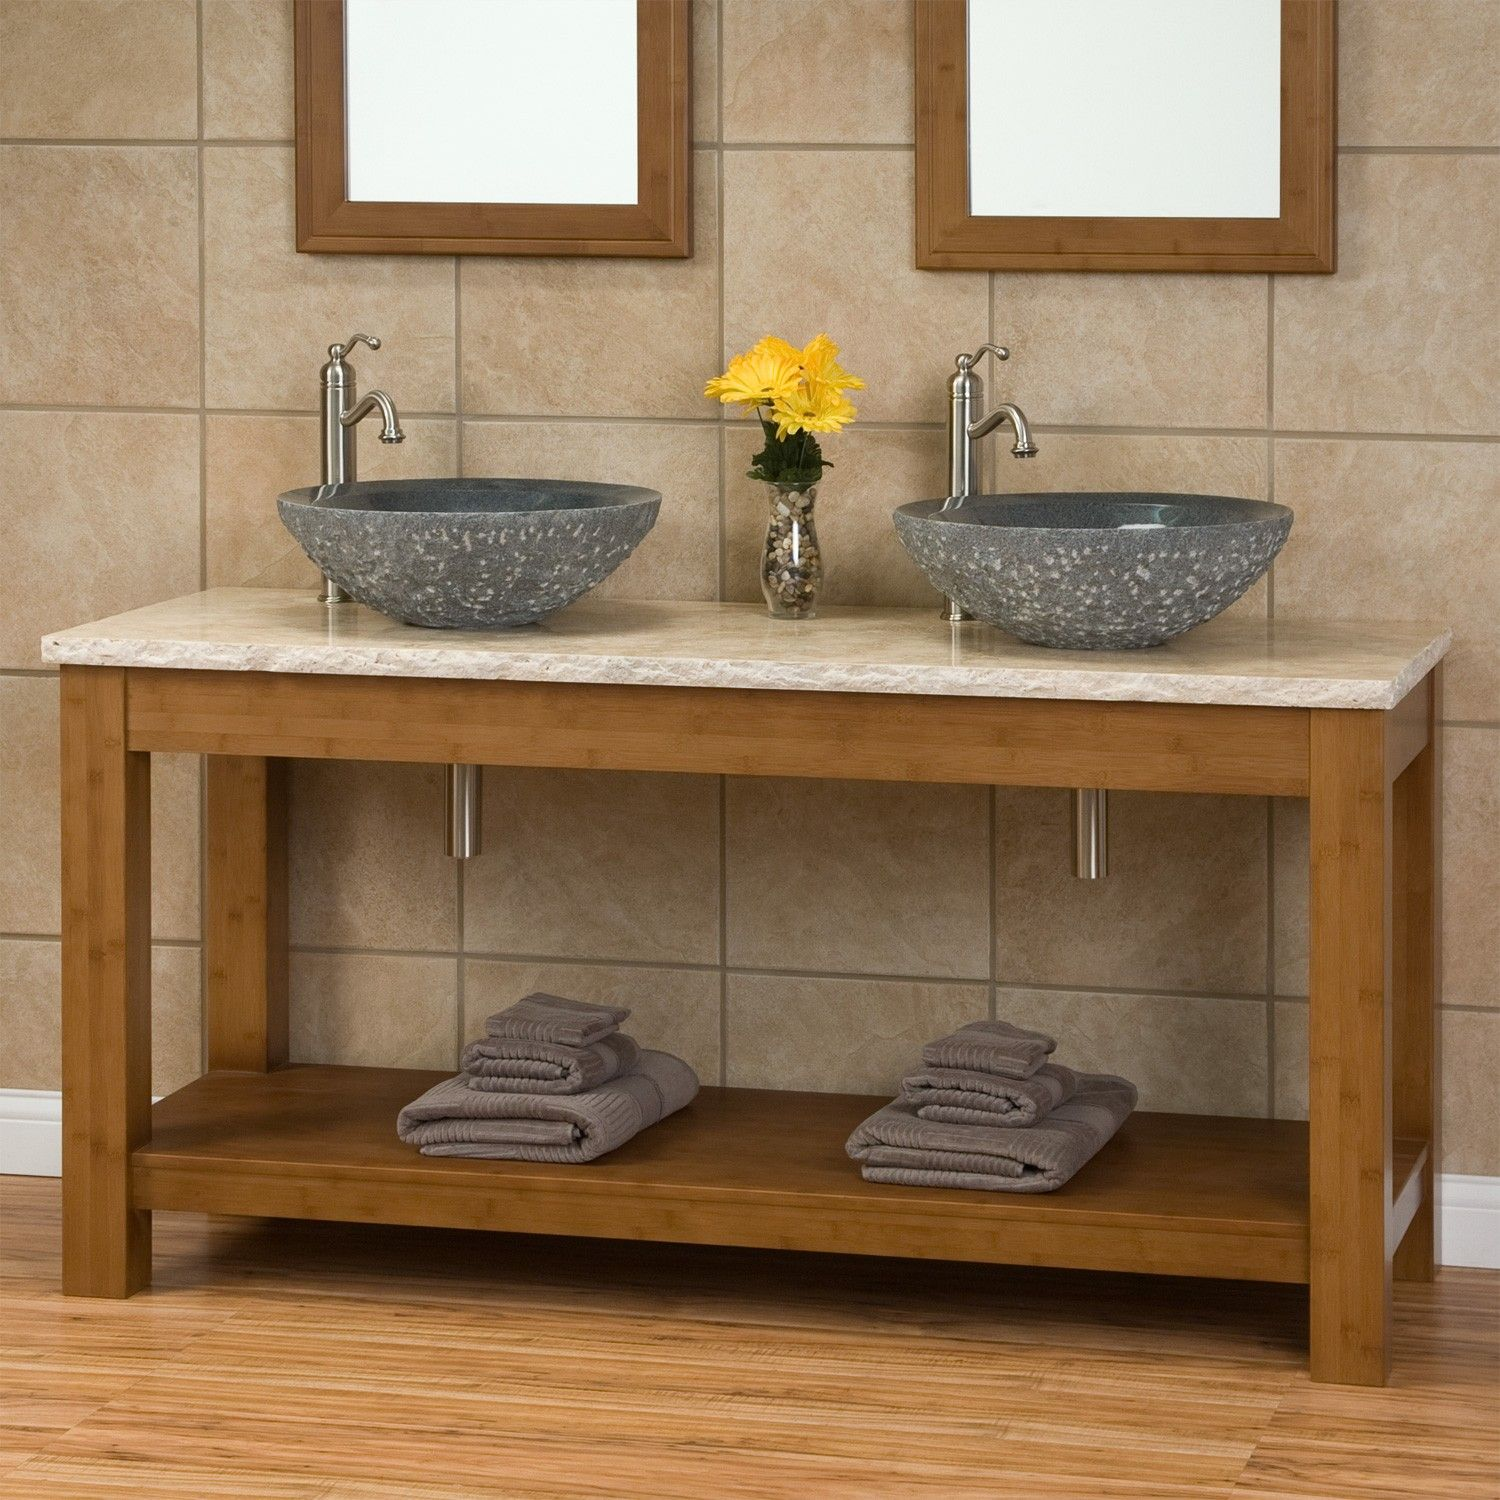 60 kirin bamboo double vessel sink console vanity with travertine bathroom furniture 60 kirin bamboo double vessel sink console vanity with travertine top geotapseo Image collections